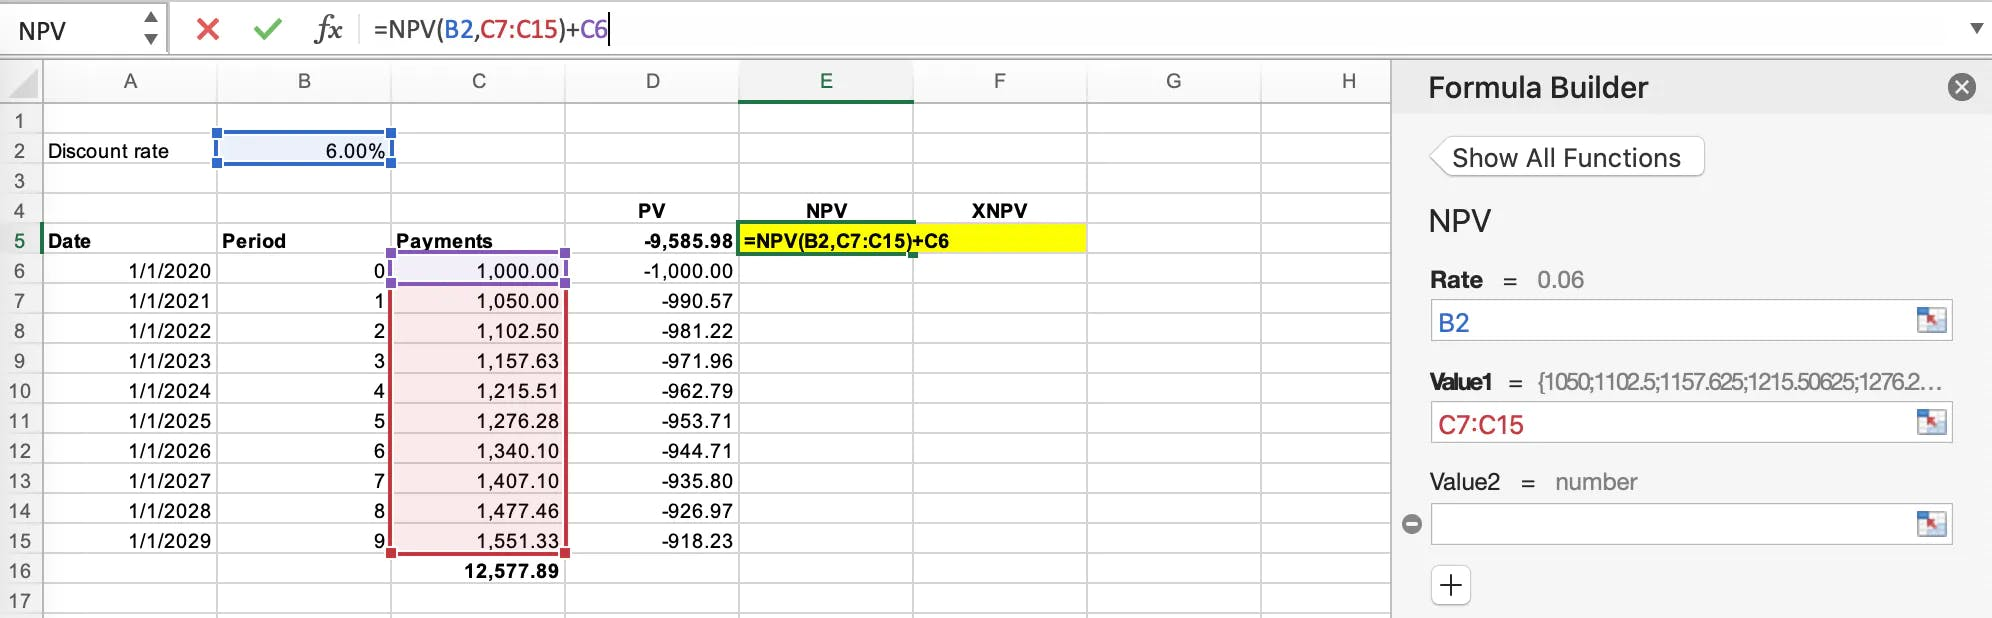 Application of the Net Present Value formula in Microsoft Excel